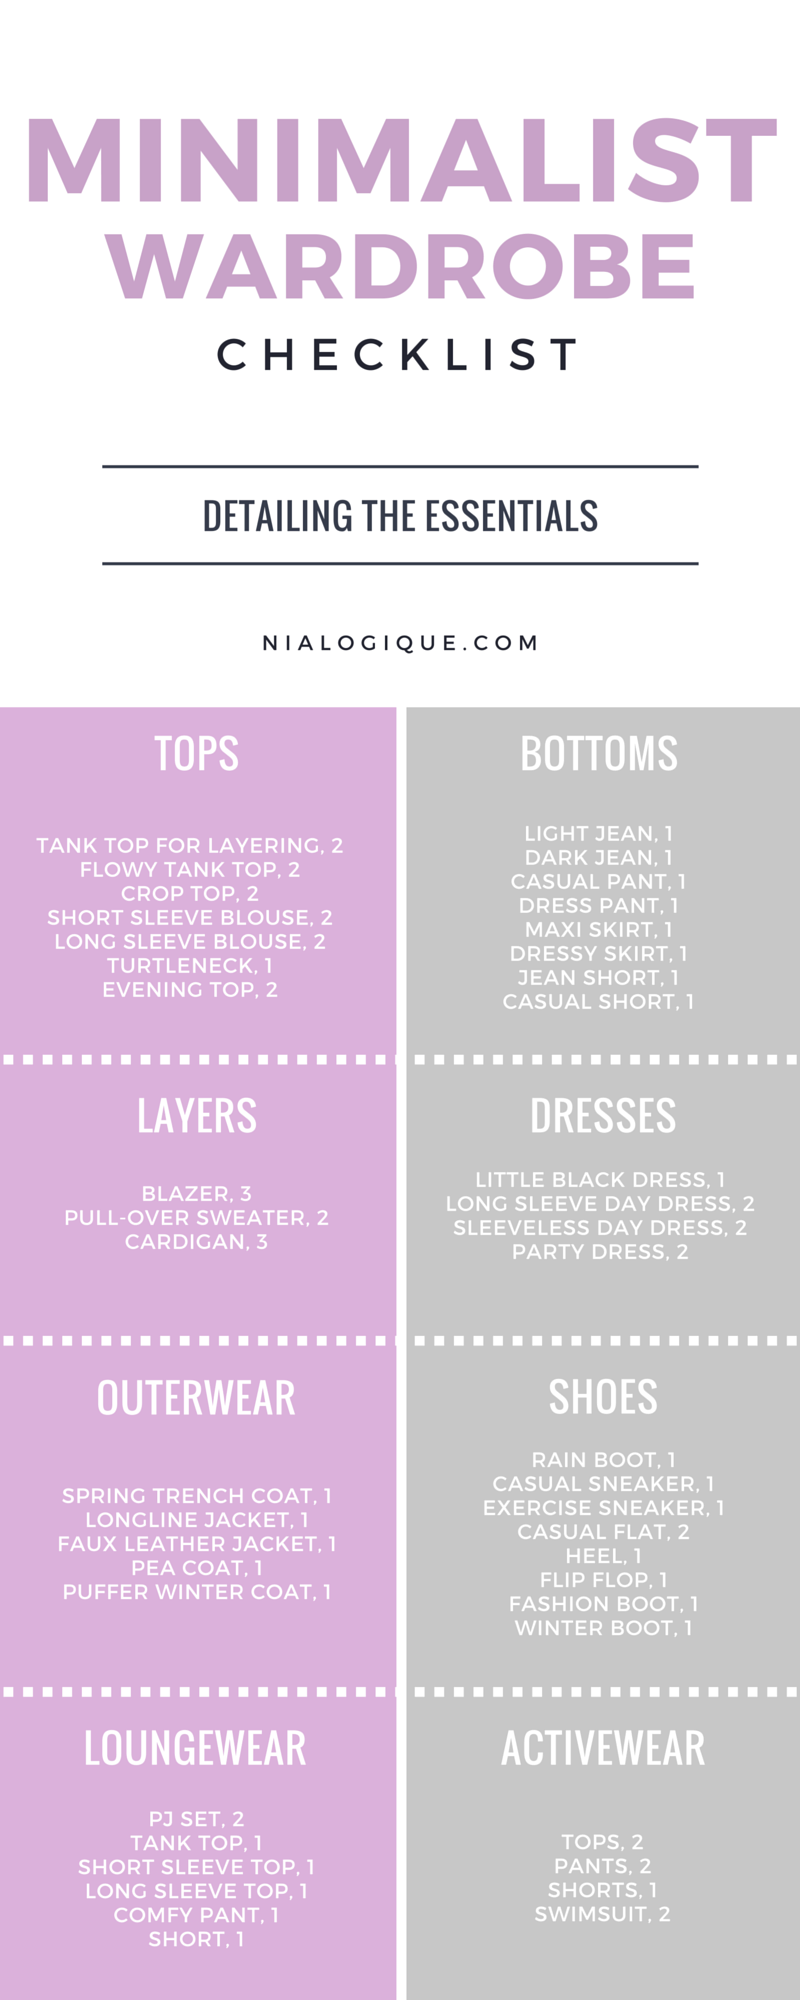 A Simple Straightforward Minimalist Wardrobe Checklist